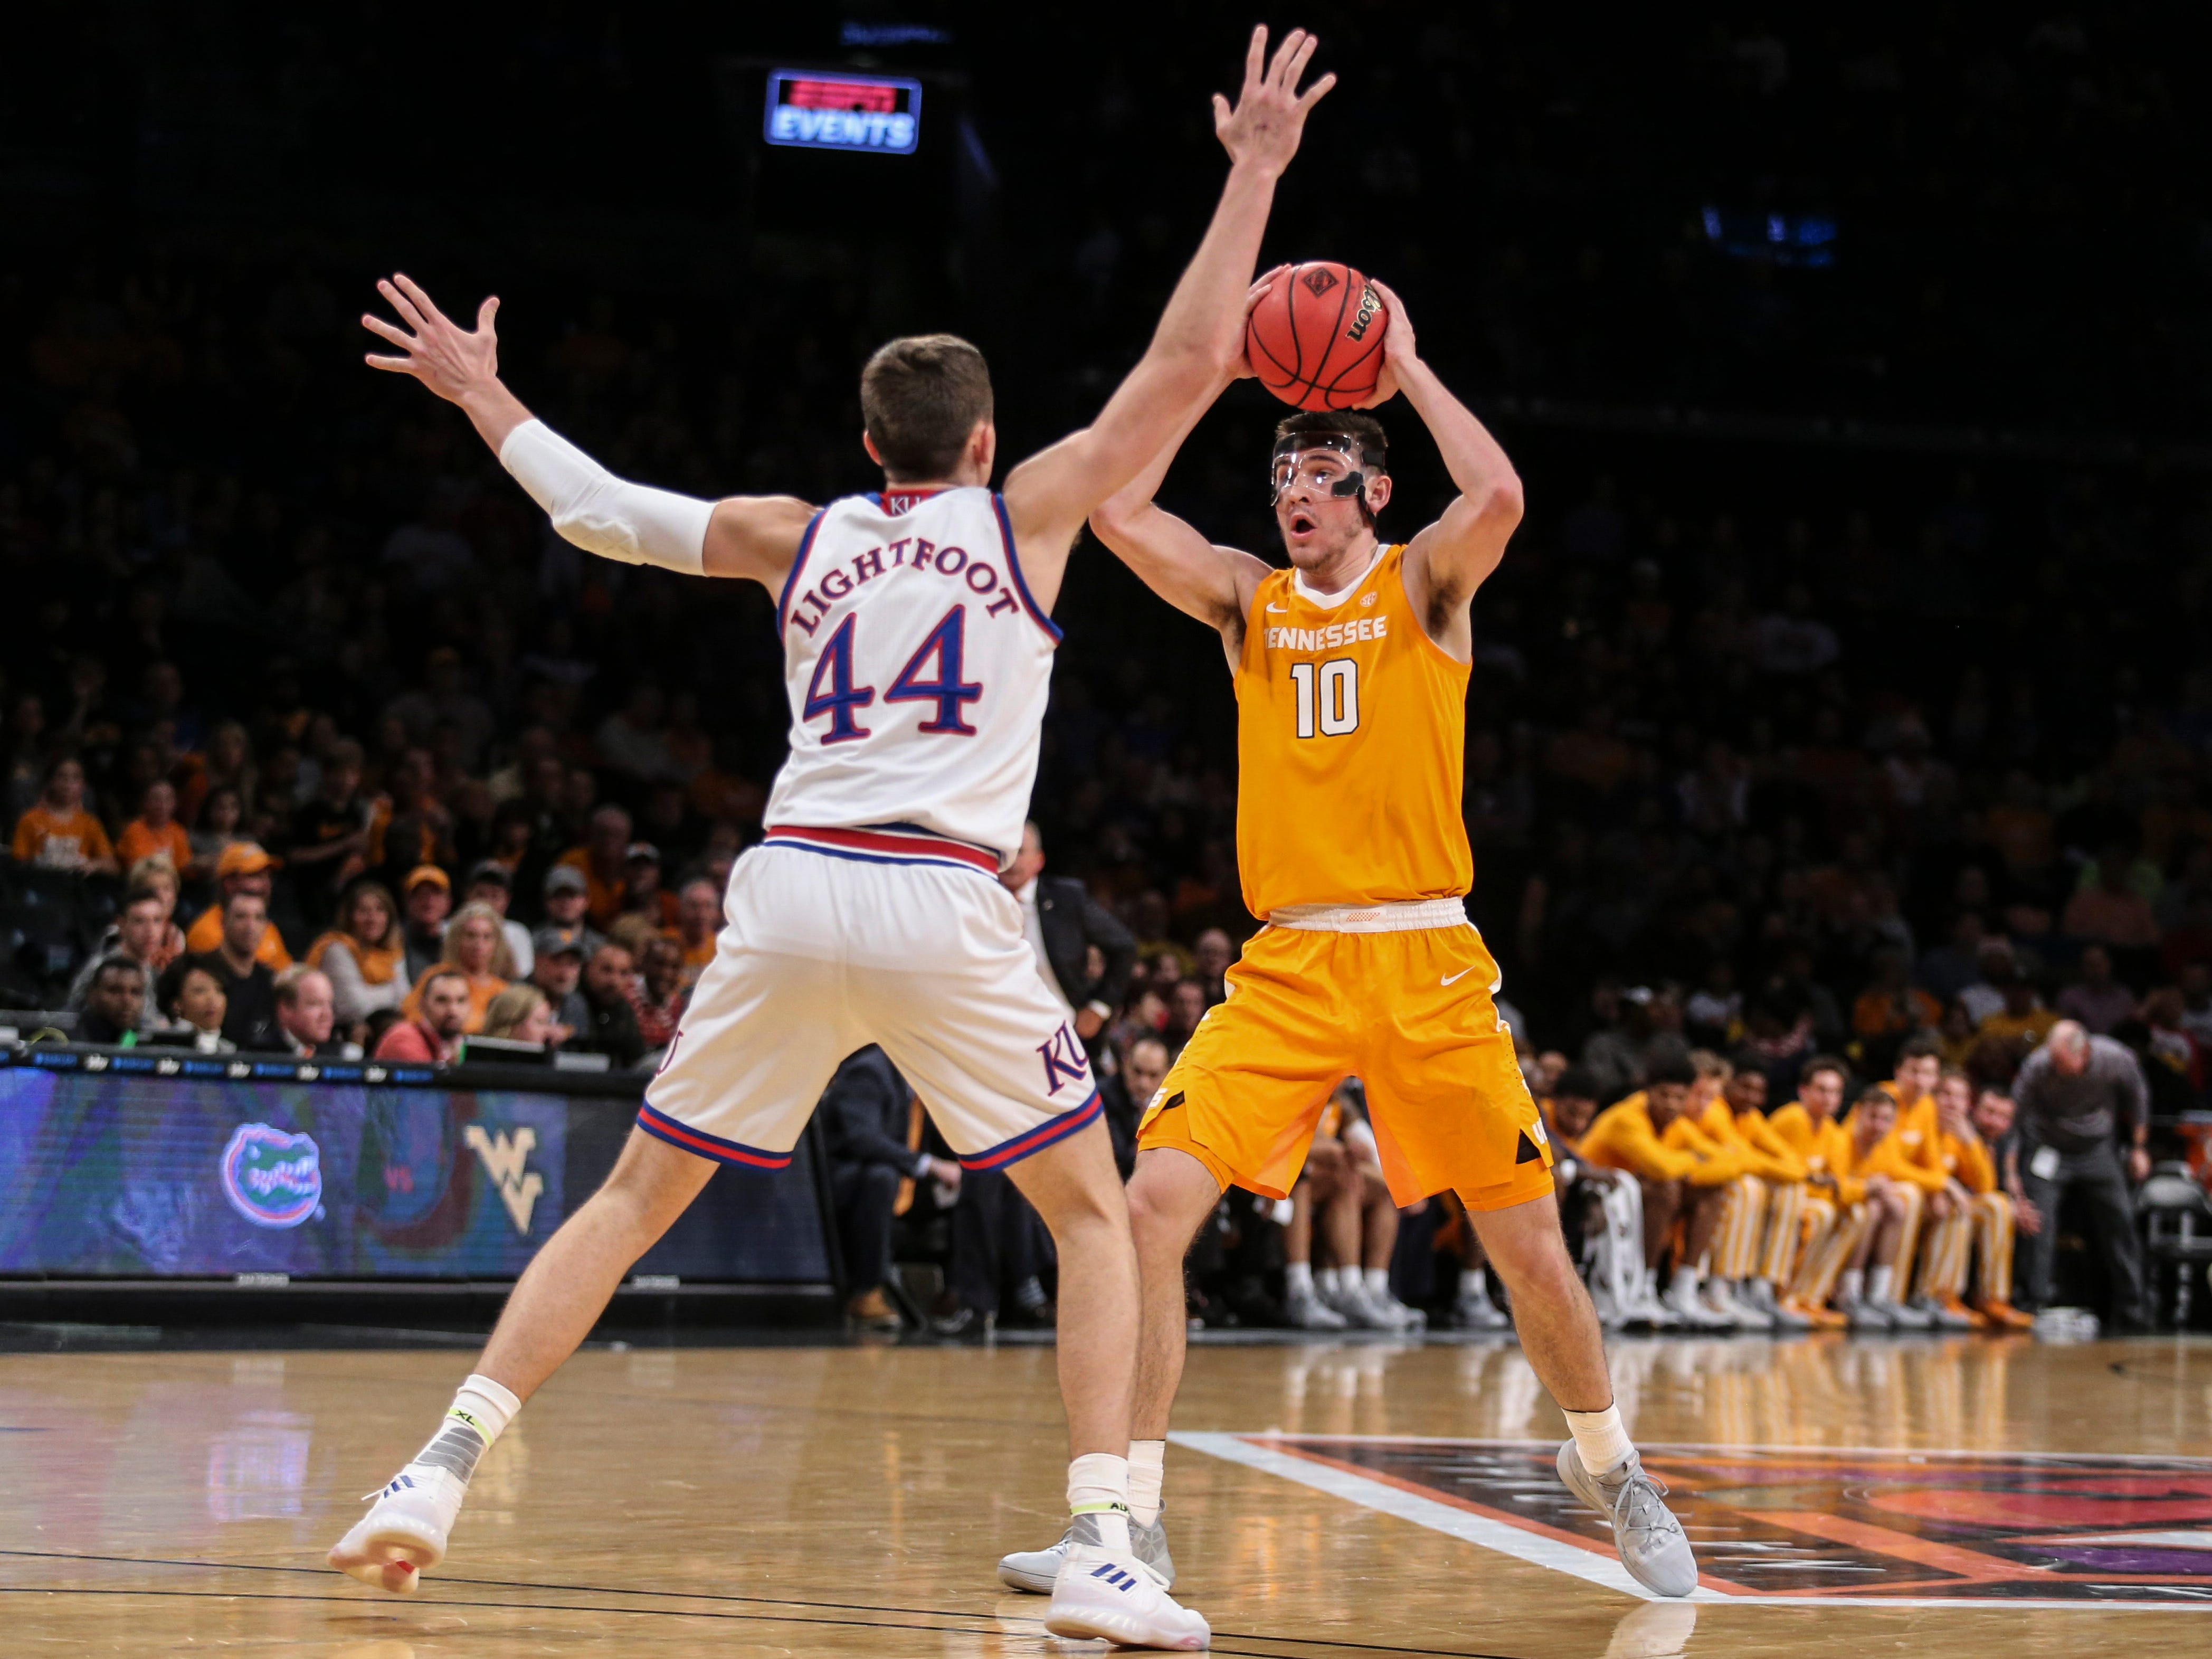 Nov 23, 2018; Brooklyn, NY, USA; Tennessee Volunteers forward John Fulkerson (10) is defended by Kansas Jayhawks forward Mitch Lightfoot (44) in the first half of the championship game of the NIT Season Tipoff at Barclays Center. Mandatory Credit: Wendell Cruz-USA TODAY Sports